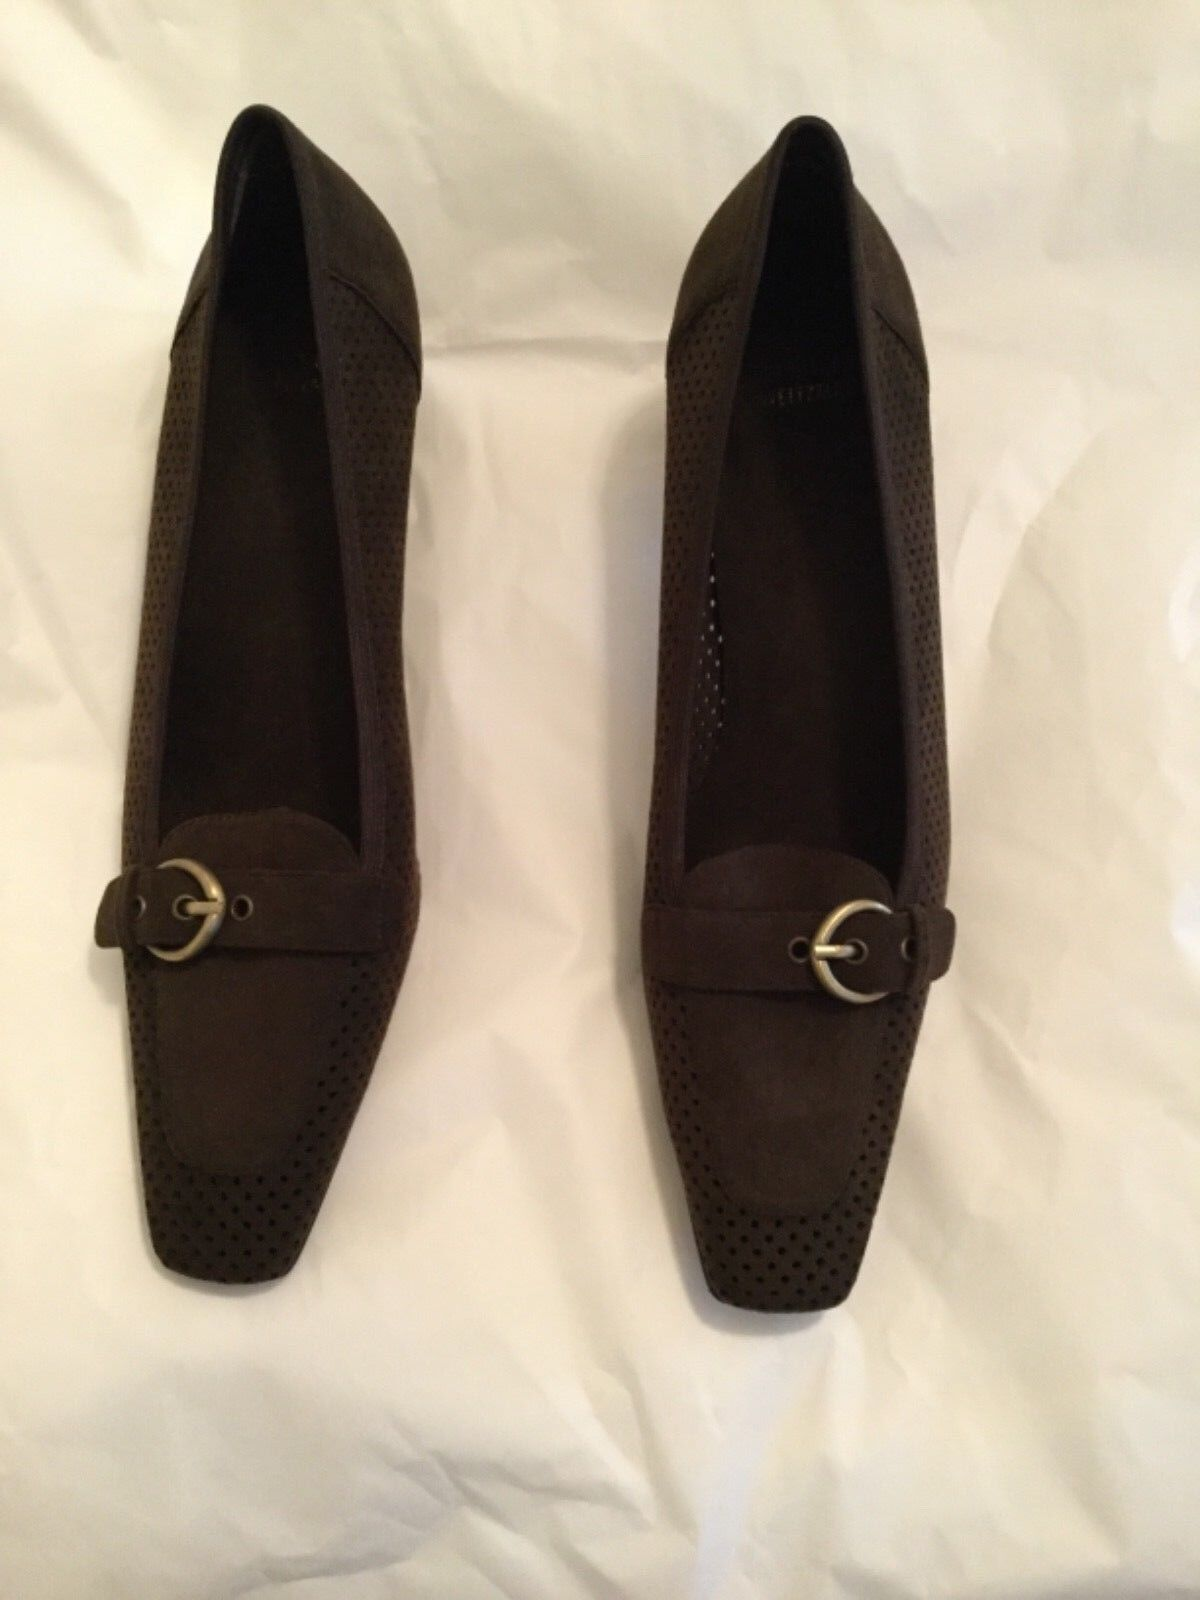 NEW Stuart Weitzman Brown Perforated Suede Heeled Loafers - 11N